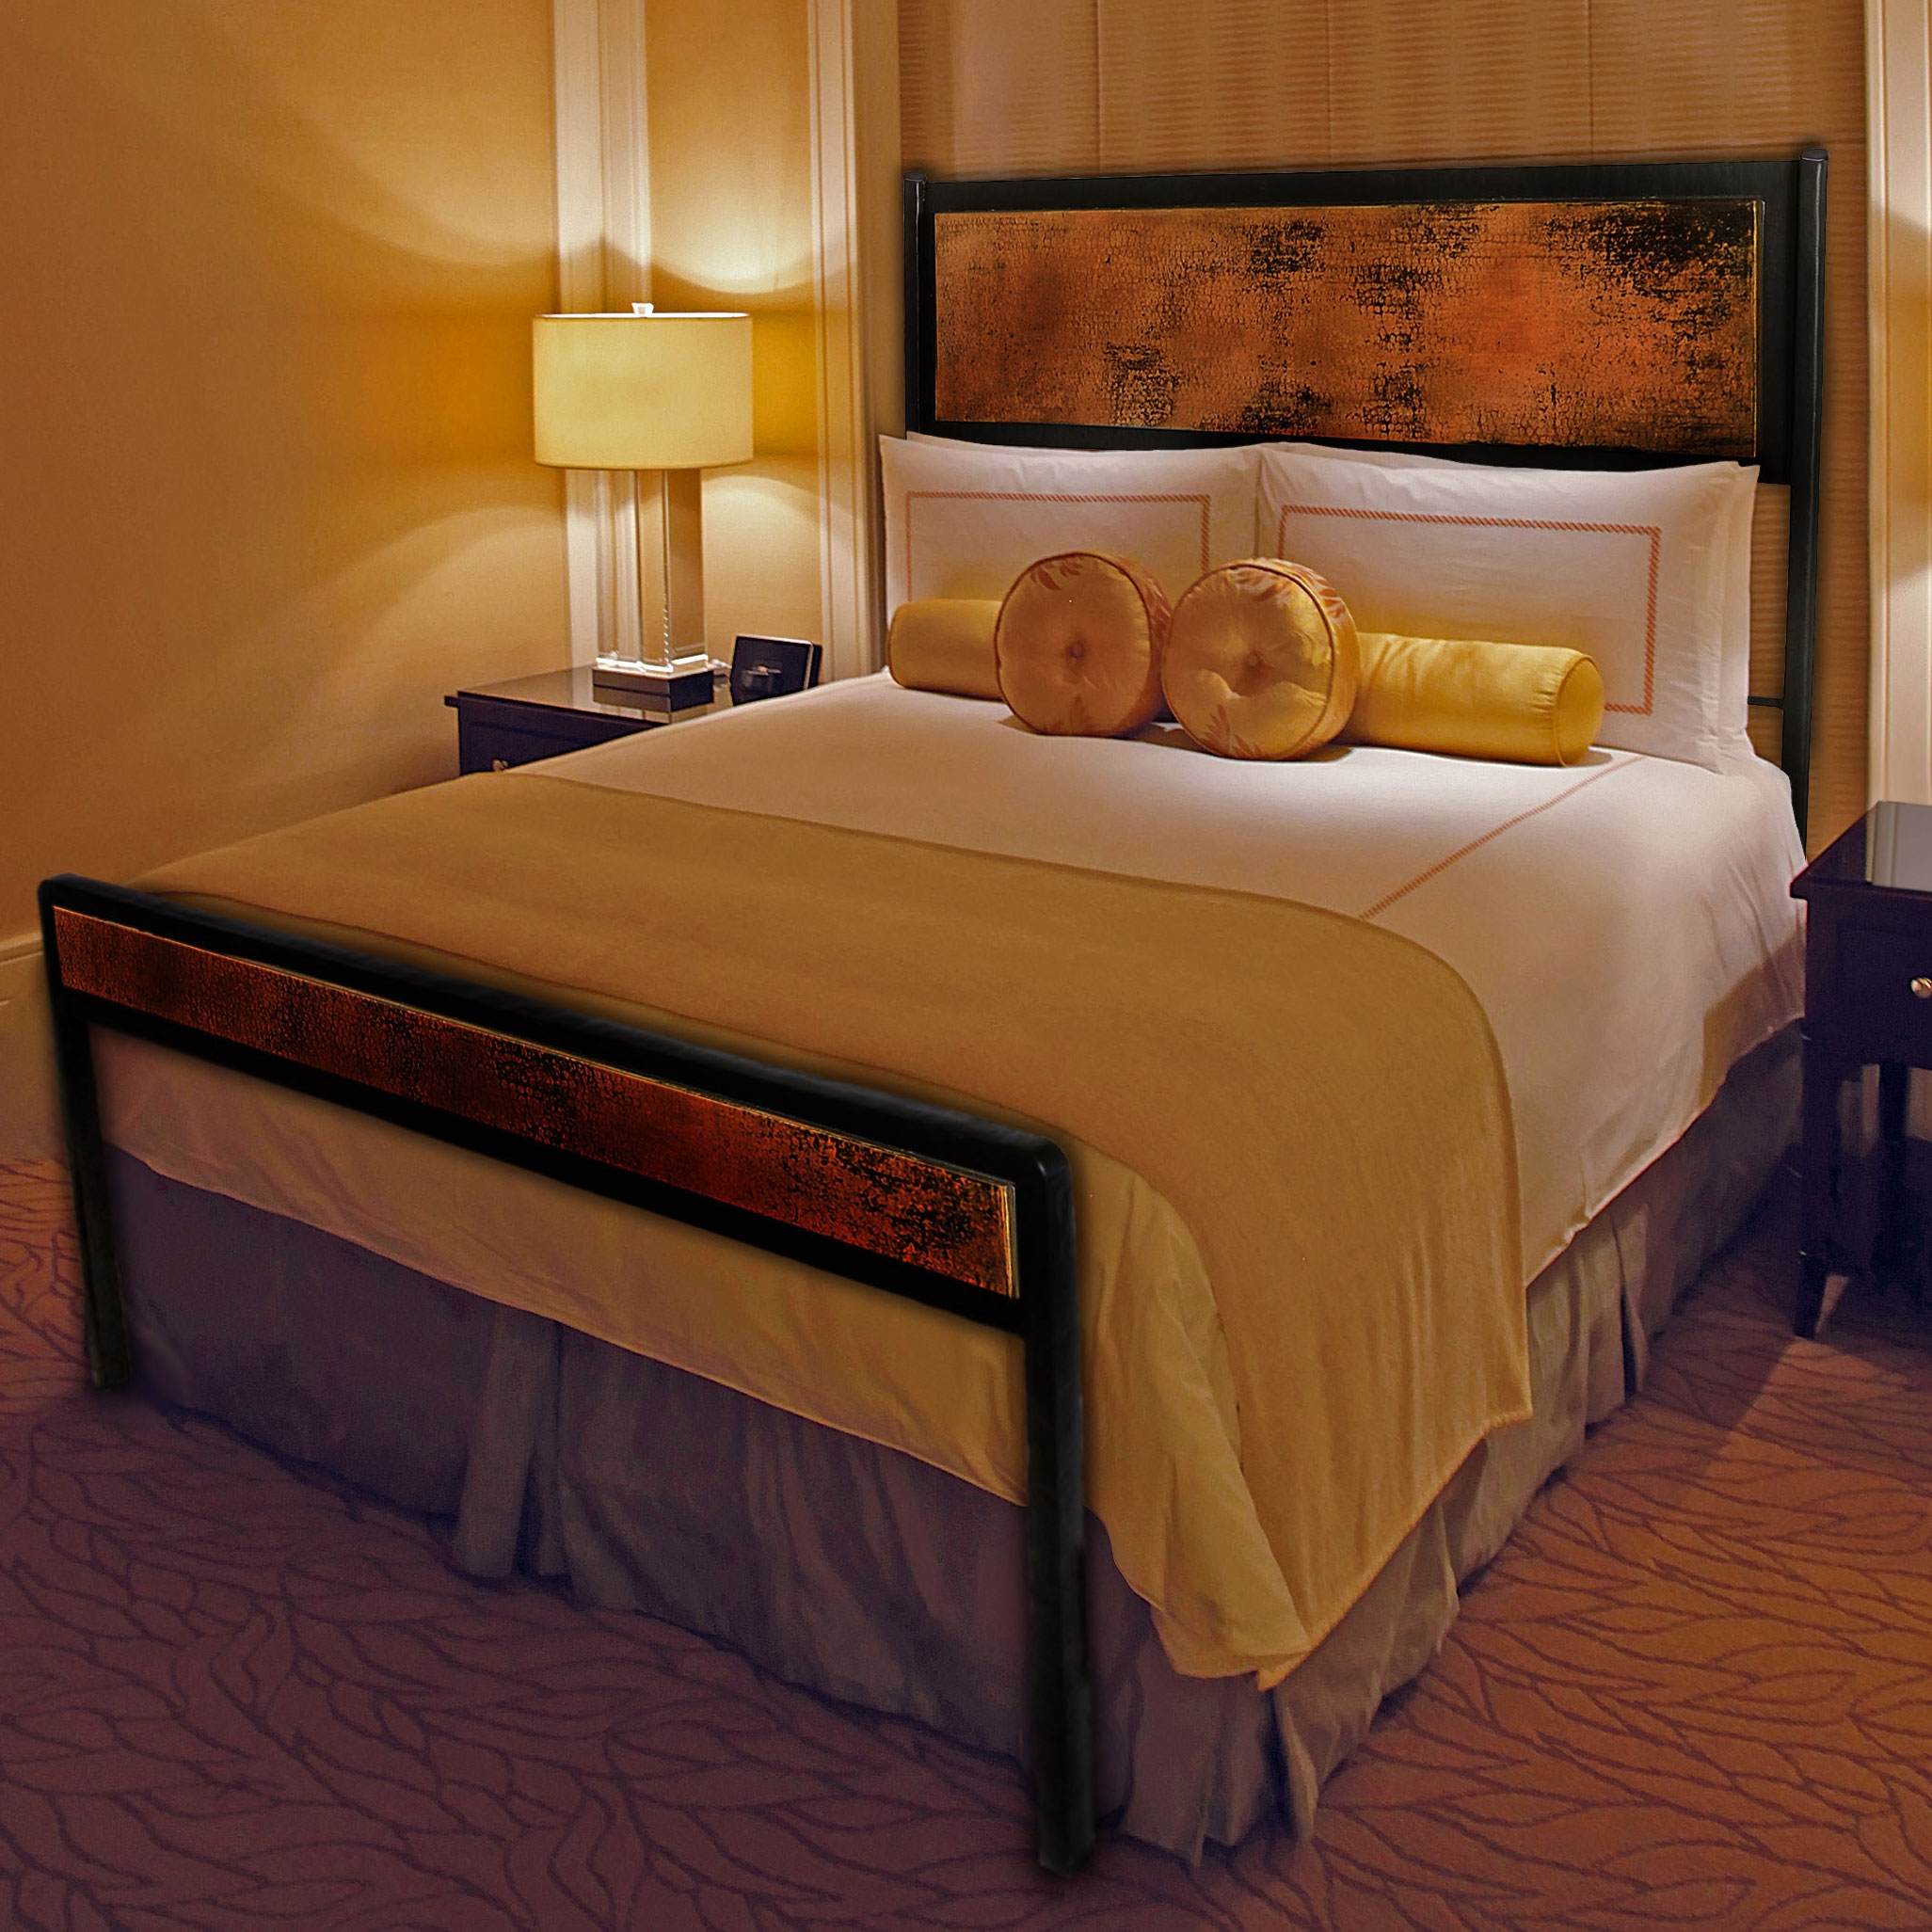 pictured here is the chanal wrought iron bed with copper hand forged by artisan blacksmiths